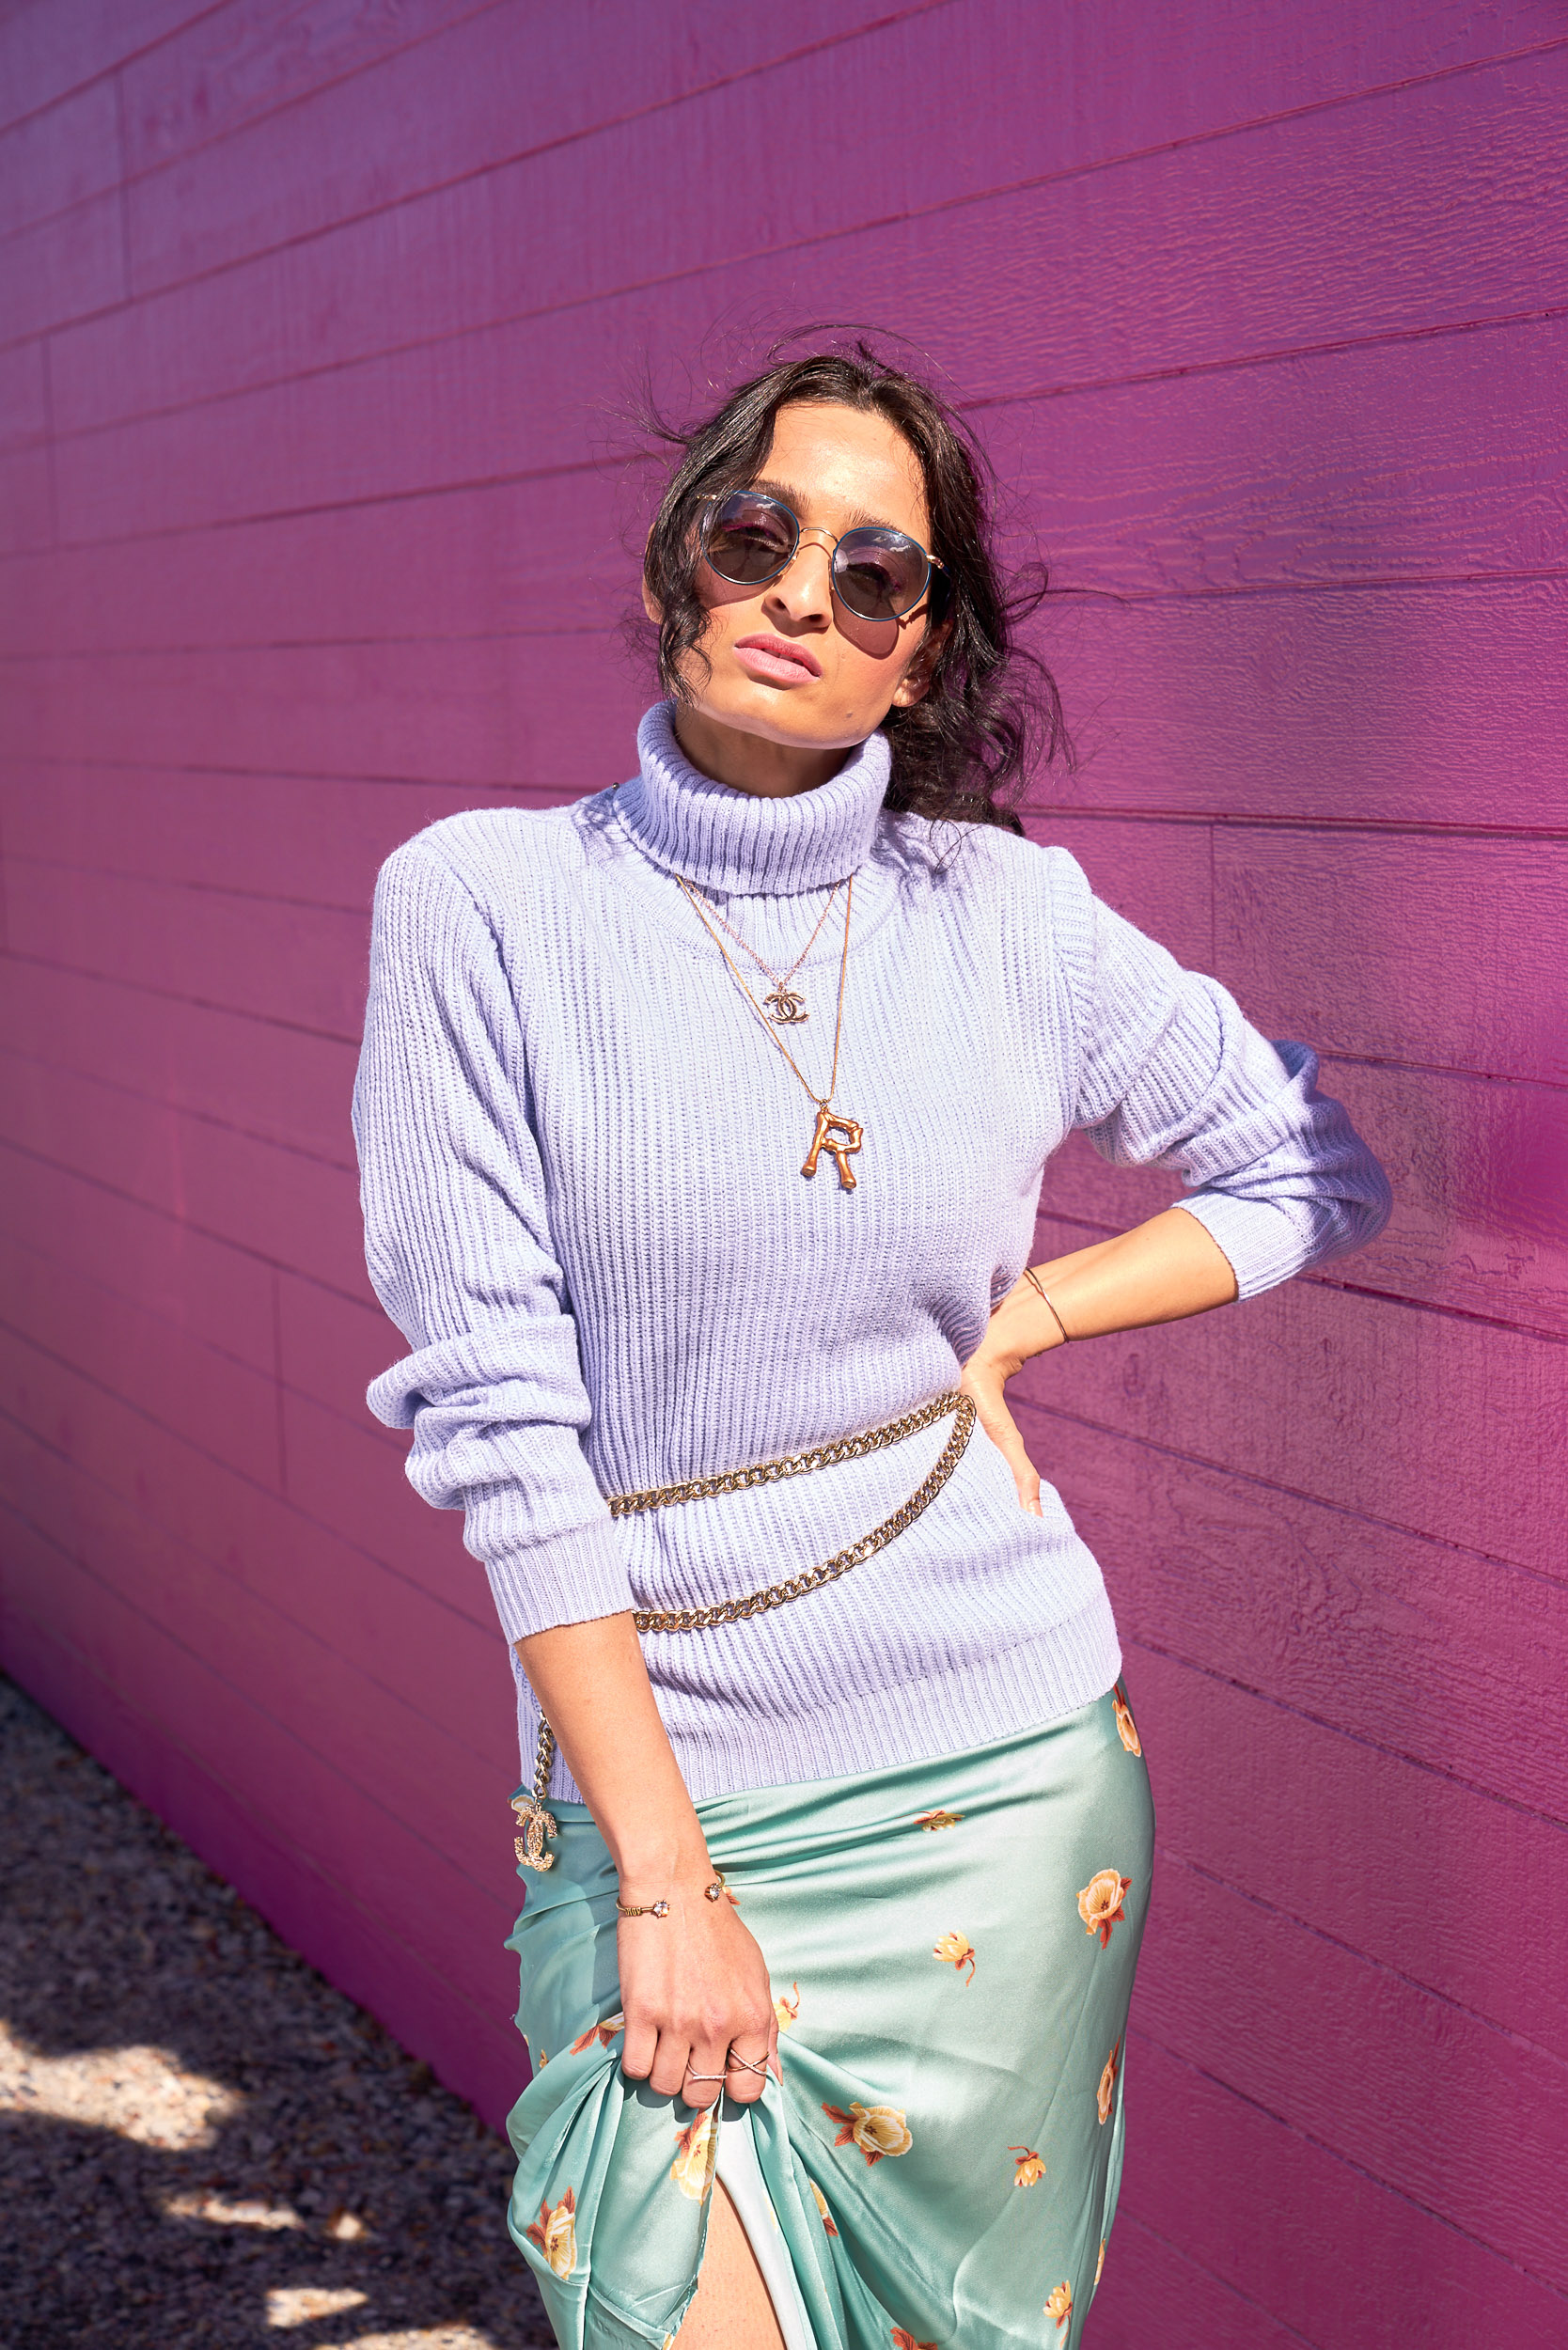 girl wearing lavender sweater and teal silk dress against pink wall